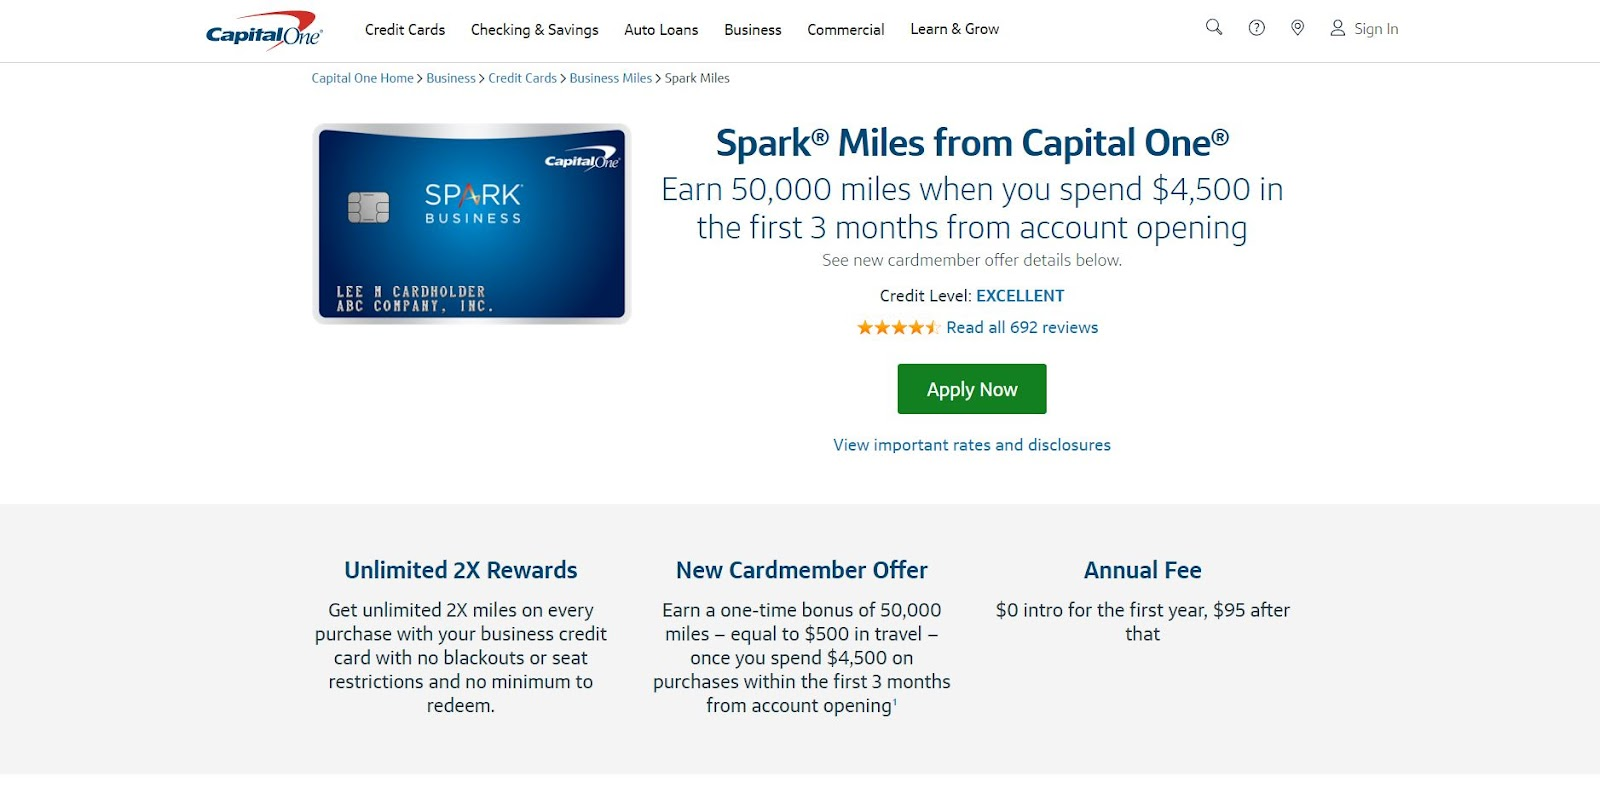 Capital One Spark Miles for Business: The Top 10 Business Credit Cards for Small Businesses